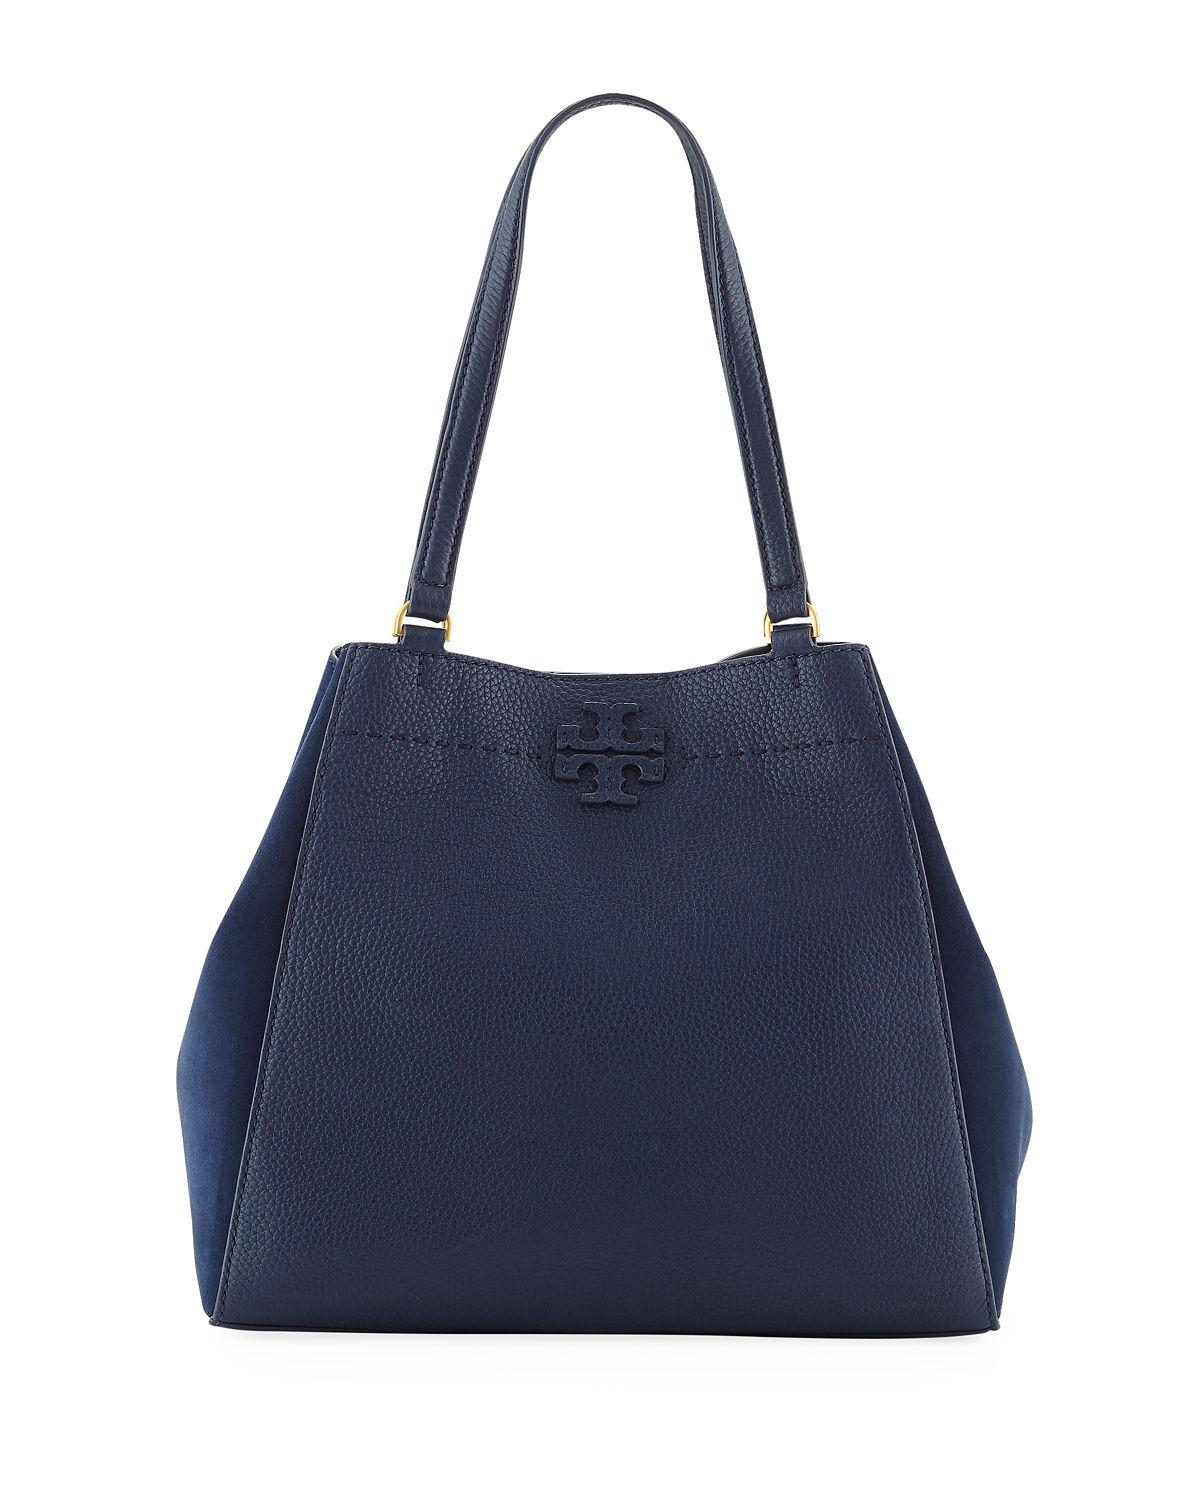 77b4751ca7a0 Lyst - Tory Burch Mcgraw Mixed Tote Bag in Blue